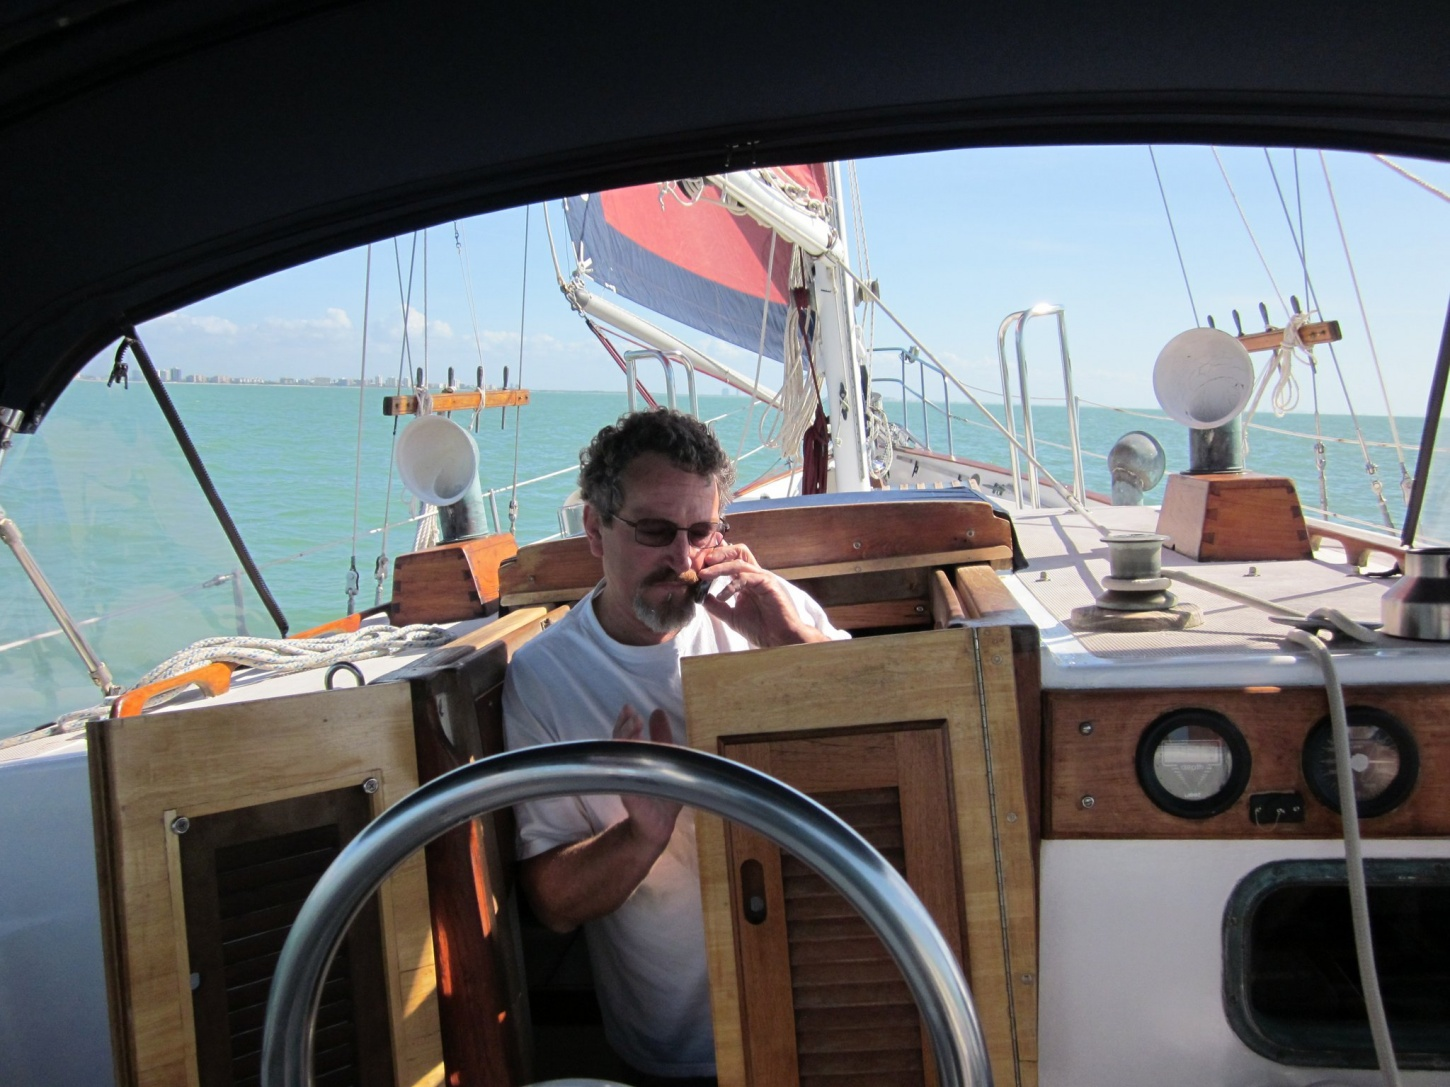 Click image for larger version  Name:Randy Peck aboard Kataboo.jpg Views:282 Size:416.6 KB ID:63085